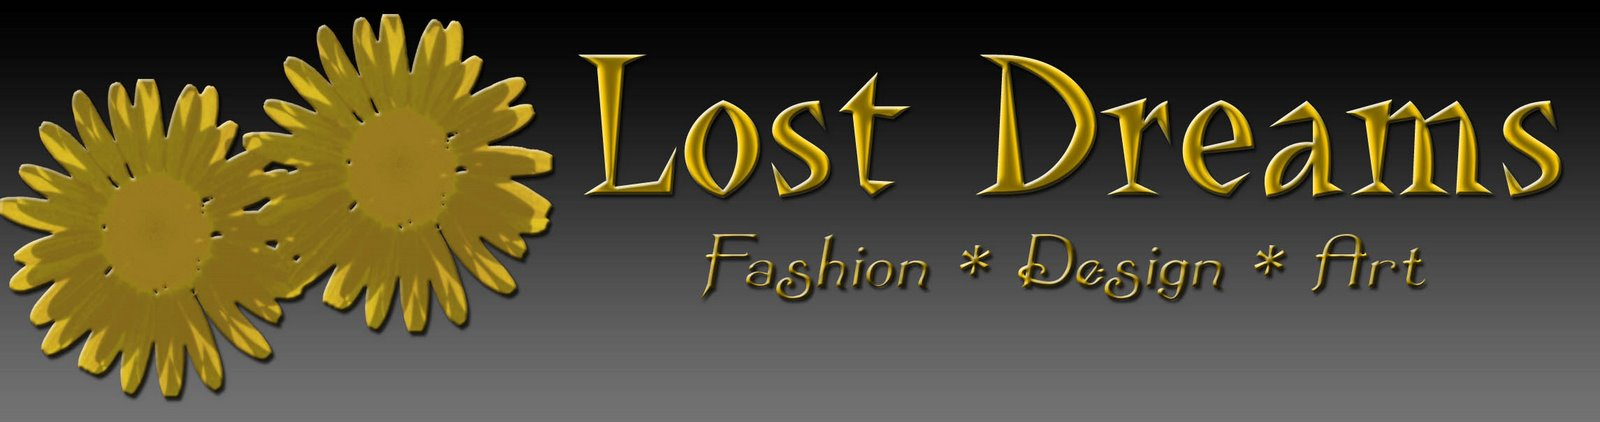 Lost Dreams Designs